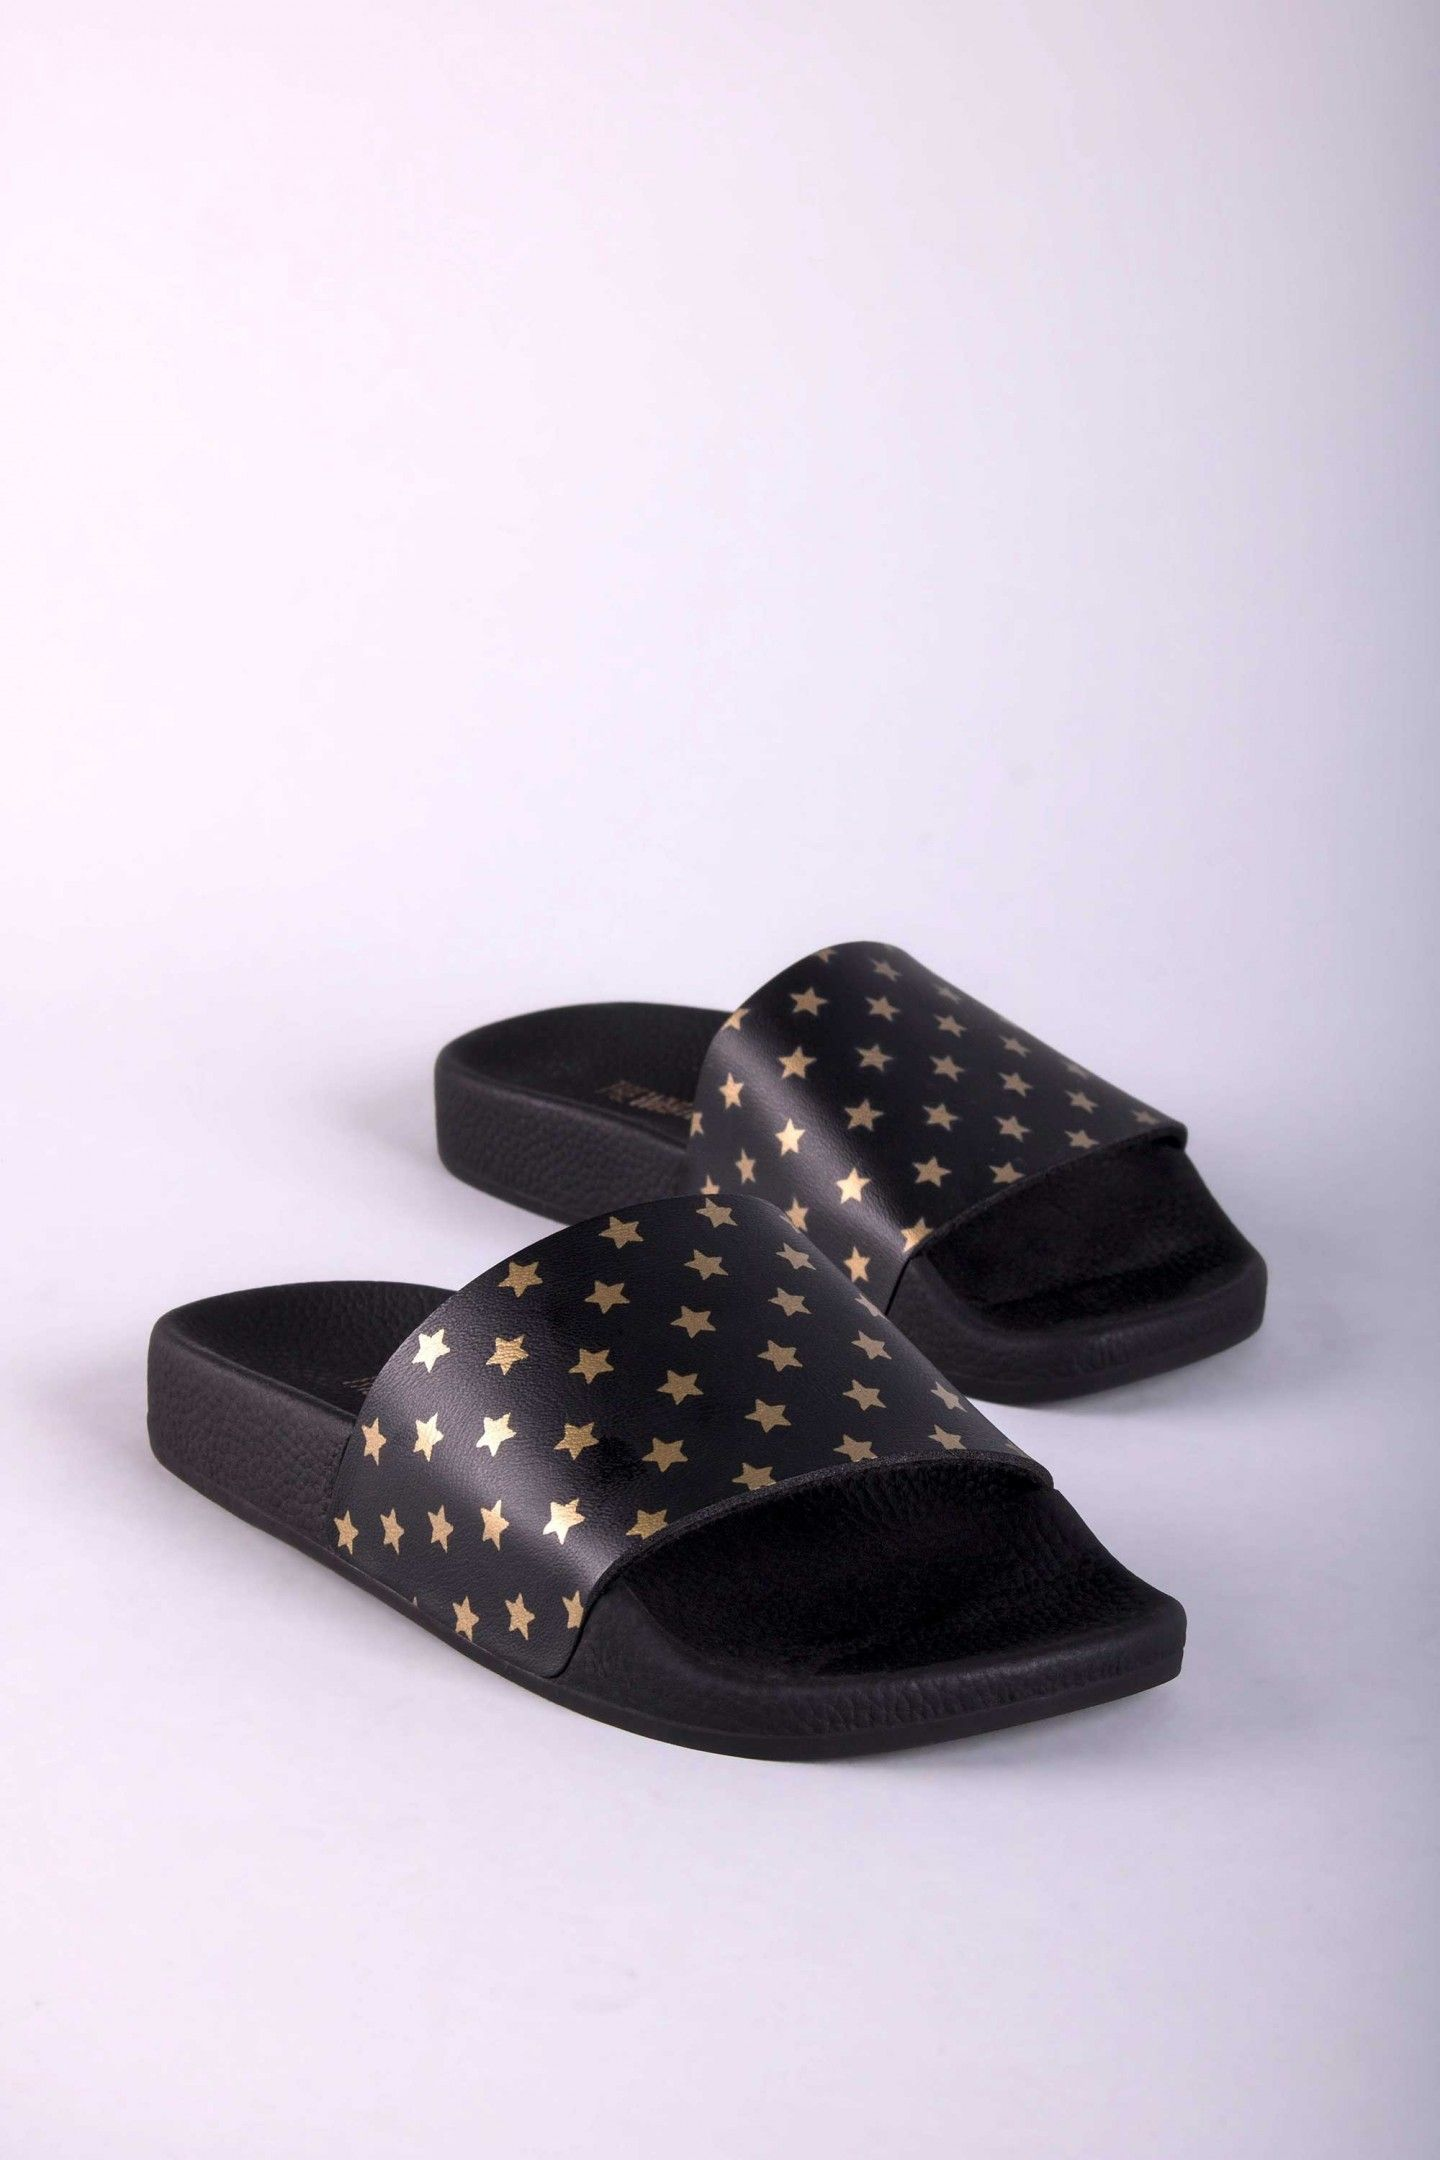 1ba57179765c3d MINI GOLD STARS - TheWhiteBrand SS 18 New Collection. Unisex flat slide  sandal in black